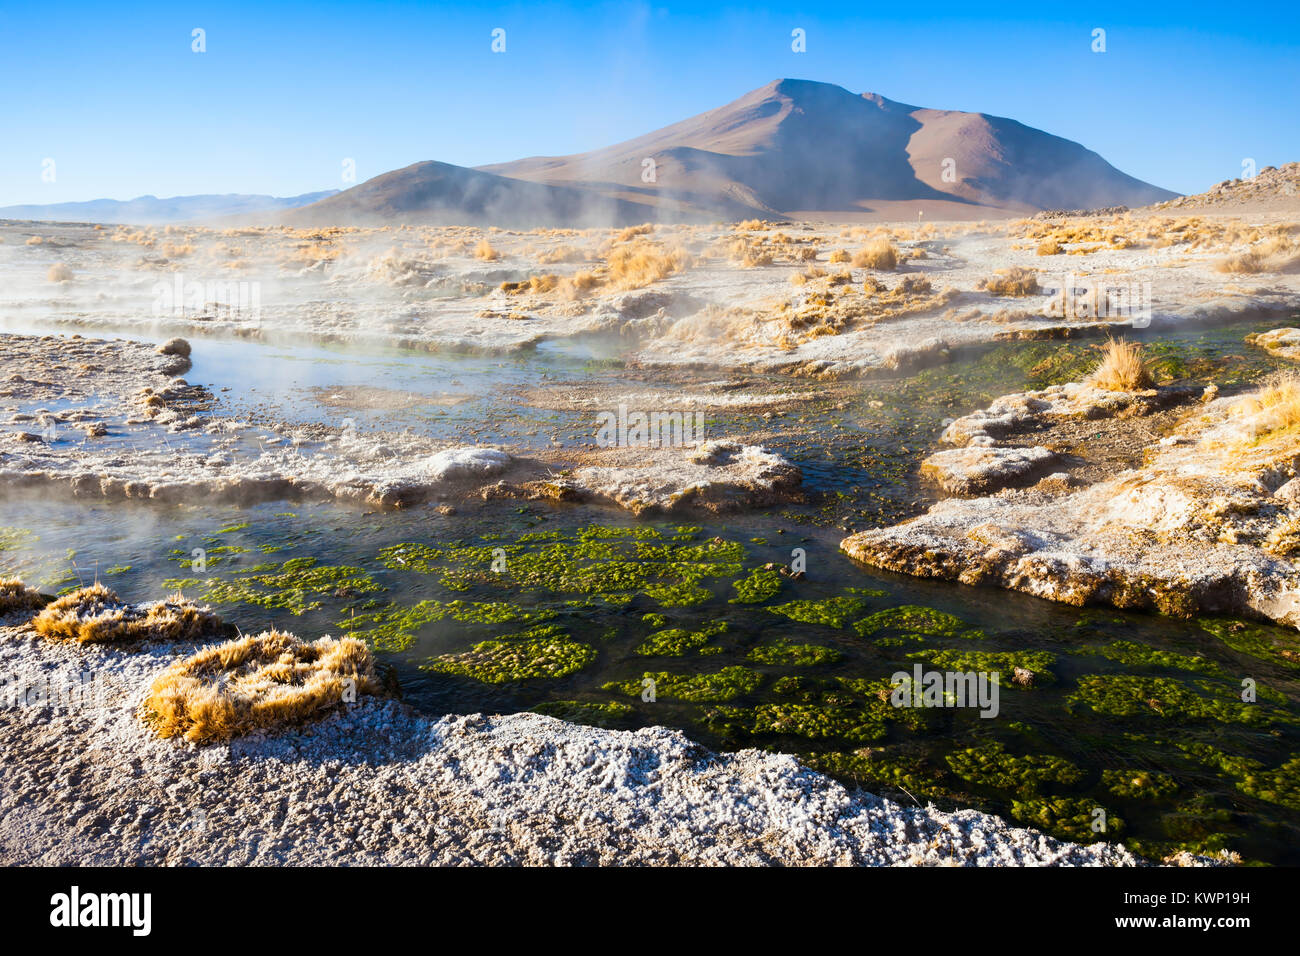 Hot spring in the Altiplano of Bolivia - Stock Image